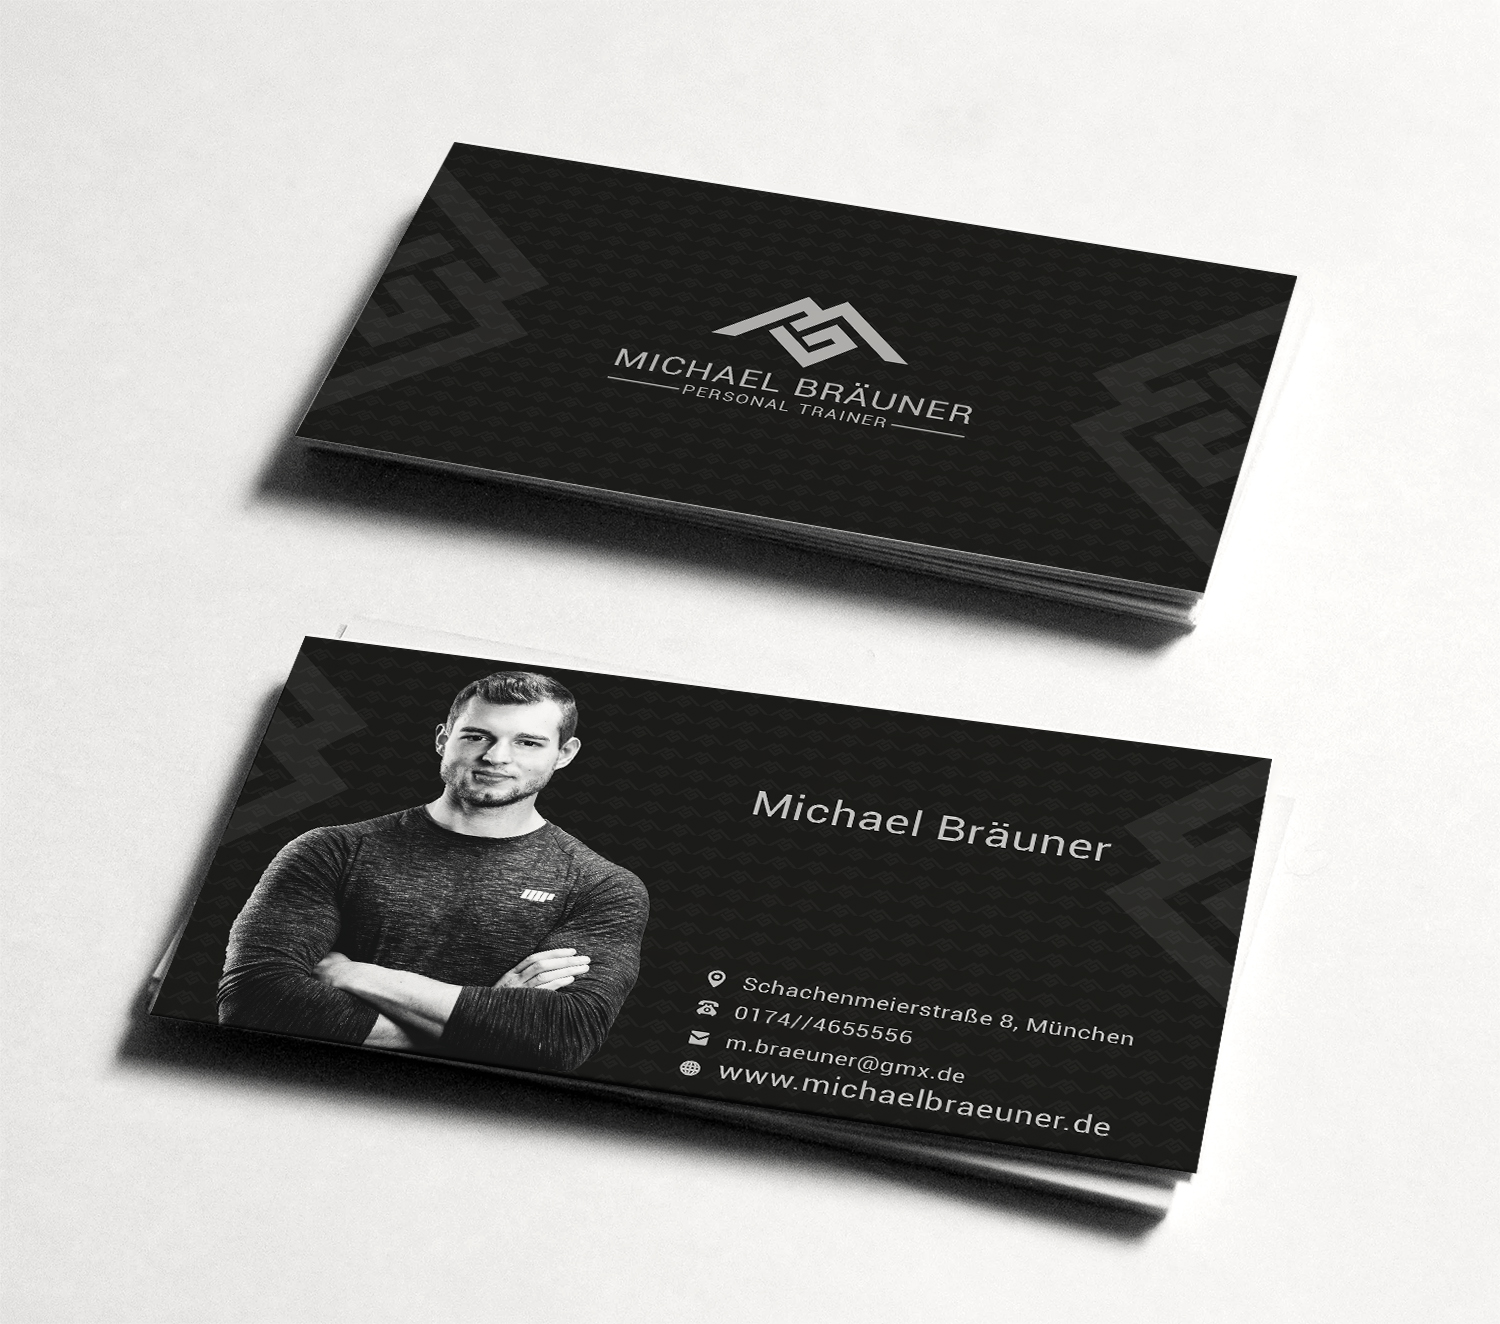 Elegant, Playful Business Card Design for a Company by RAHMAN